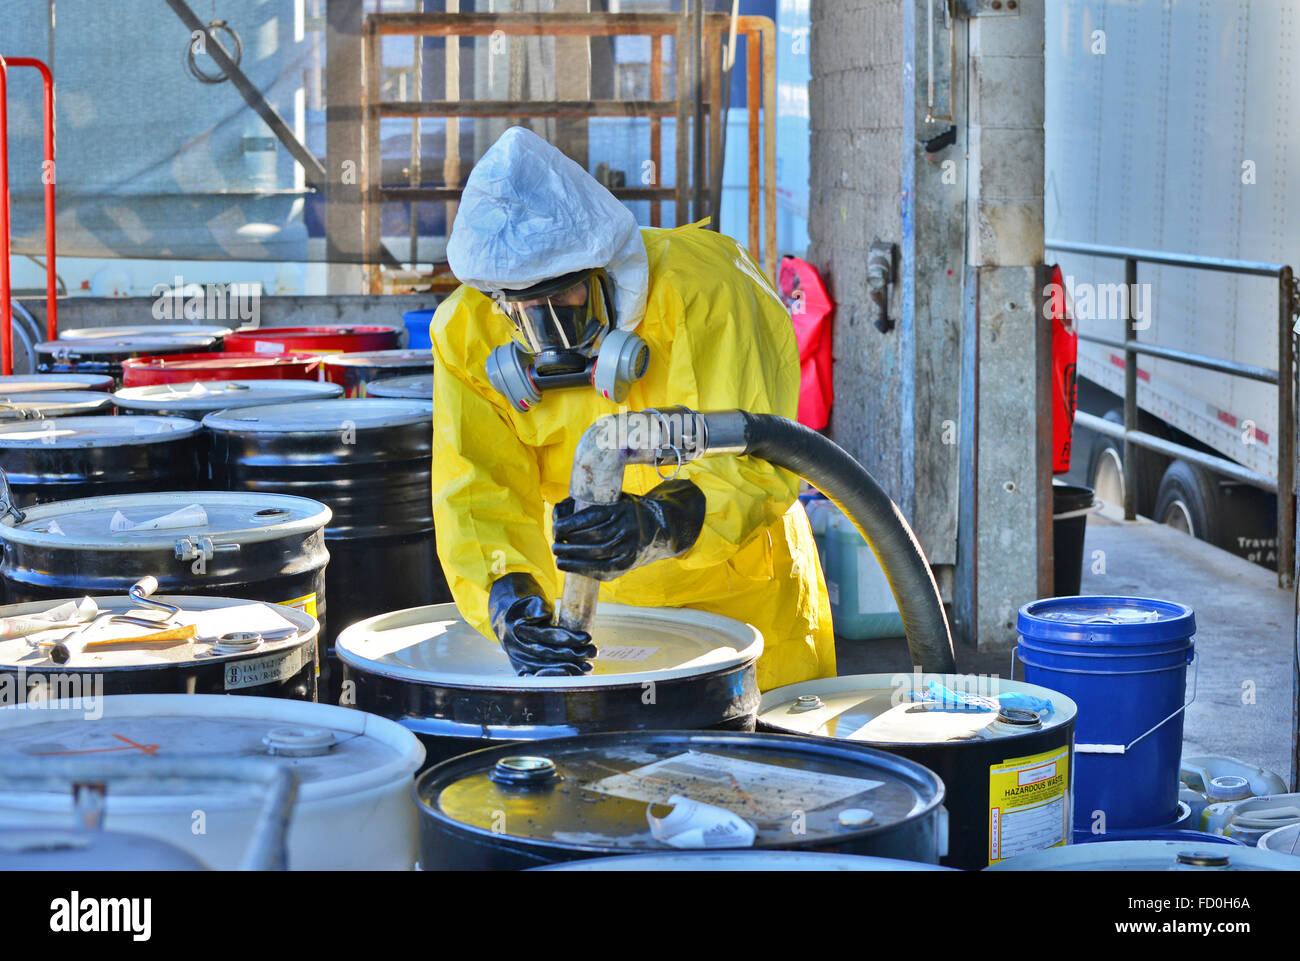 Environmental waste management, toxic material - Stock Image